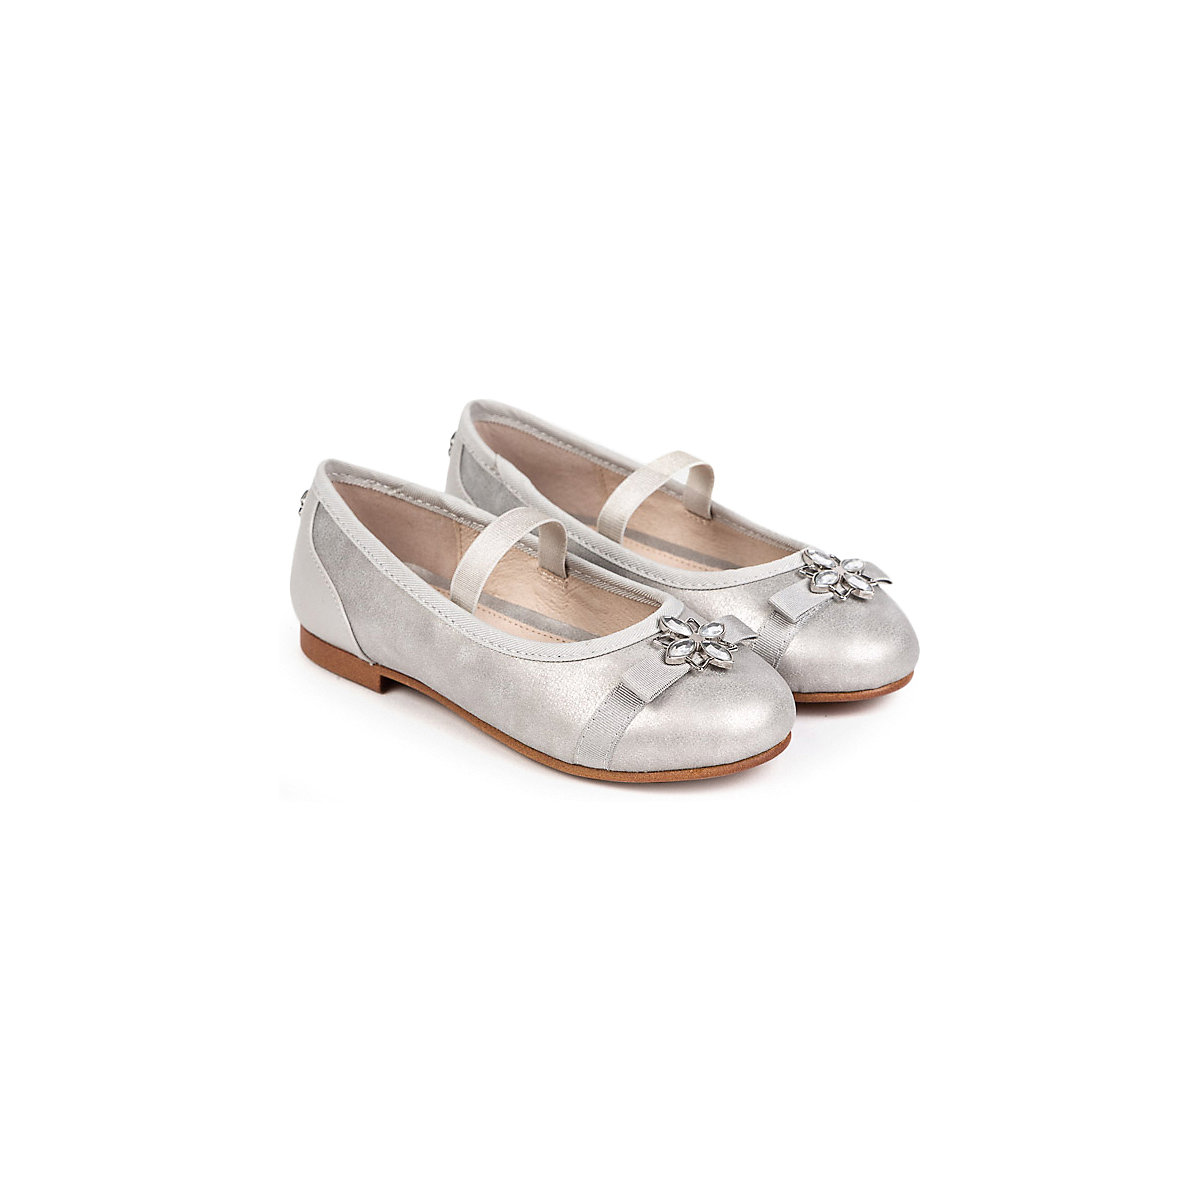 MAYORAL Children's Flats 10644567 summer ballet all-season elegant footwear Shoes for girls girl silver